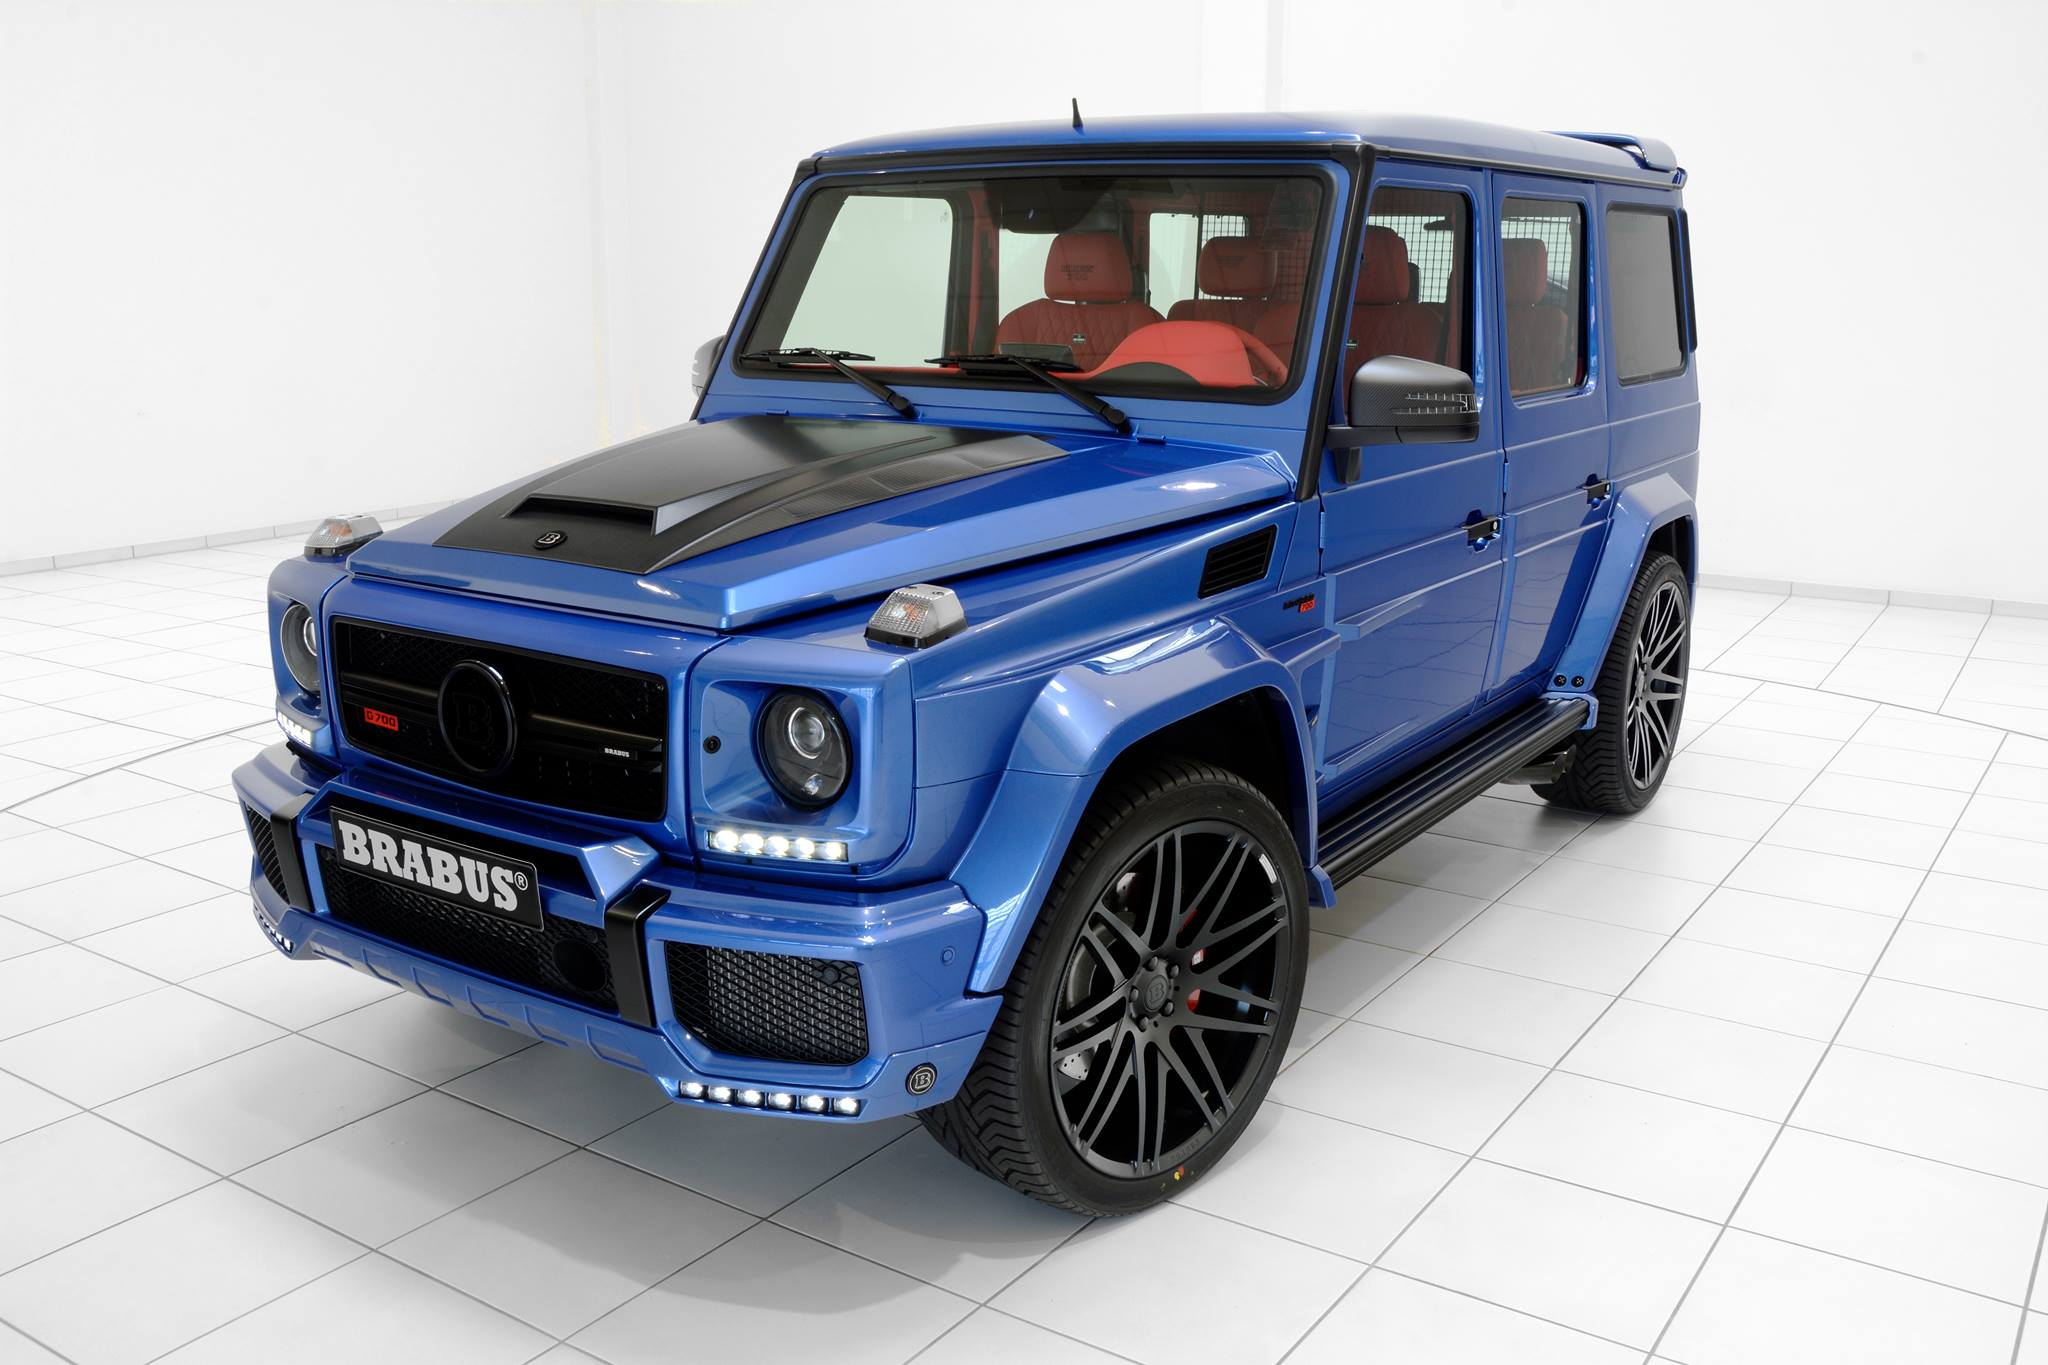 Brabus 700 HP G63 AMG Combines Blue Paint And Red Leather